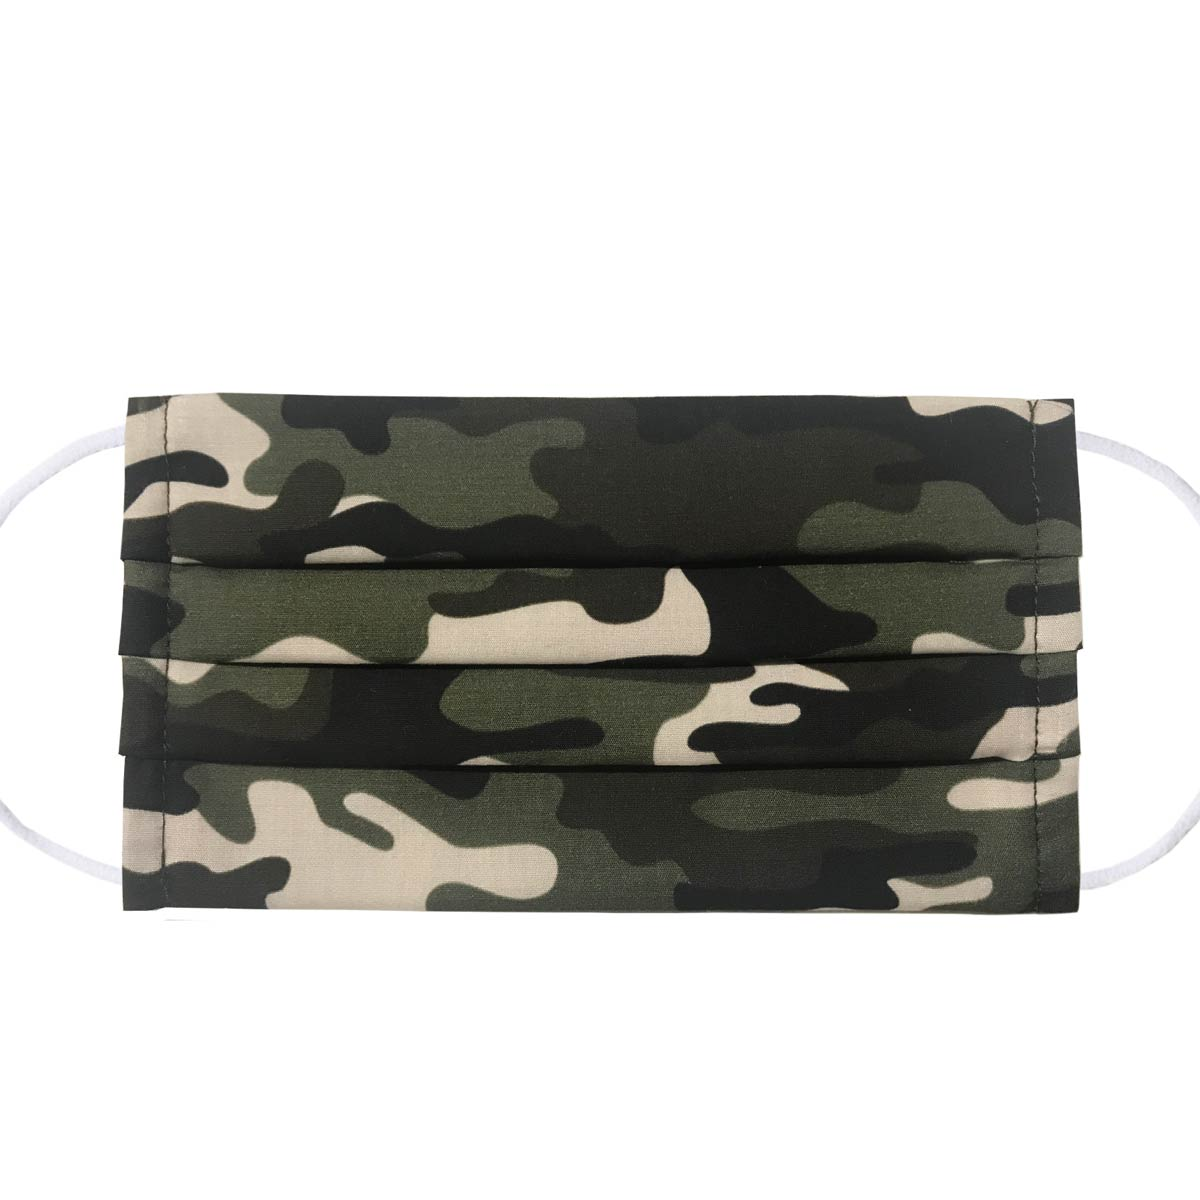 AT-06281-F12-masque-barriere-camouflage